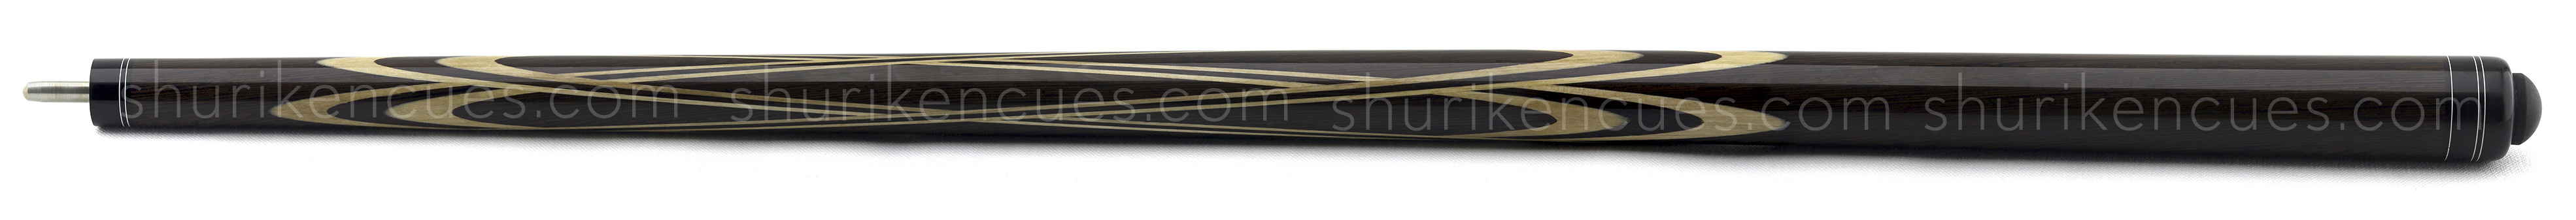 crusader wenge cue butt custom wenge cue butt wenge fullsplice cue butt wenge fullsplice wenge cue wenge butt custom cue wenge